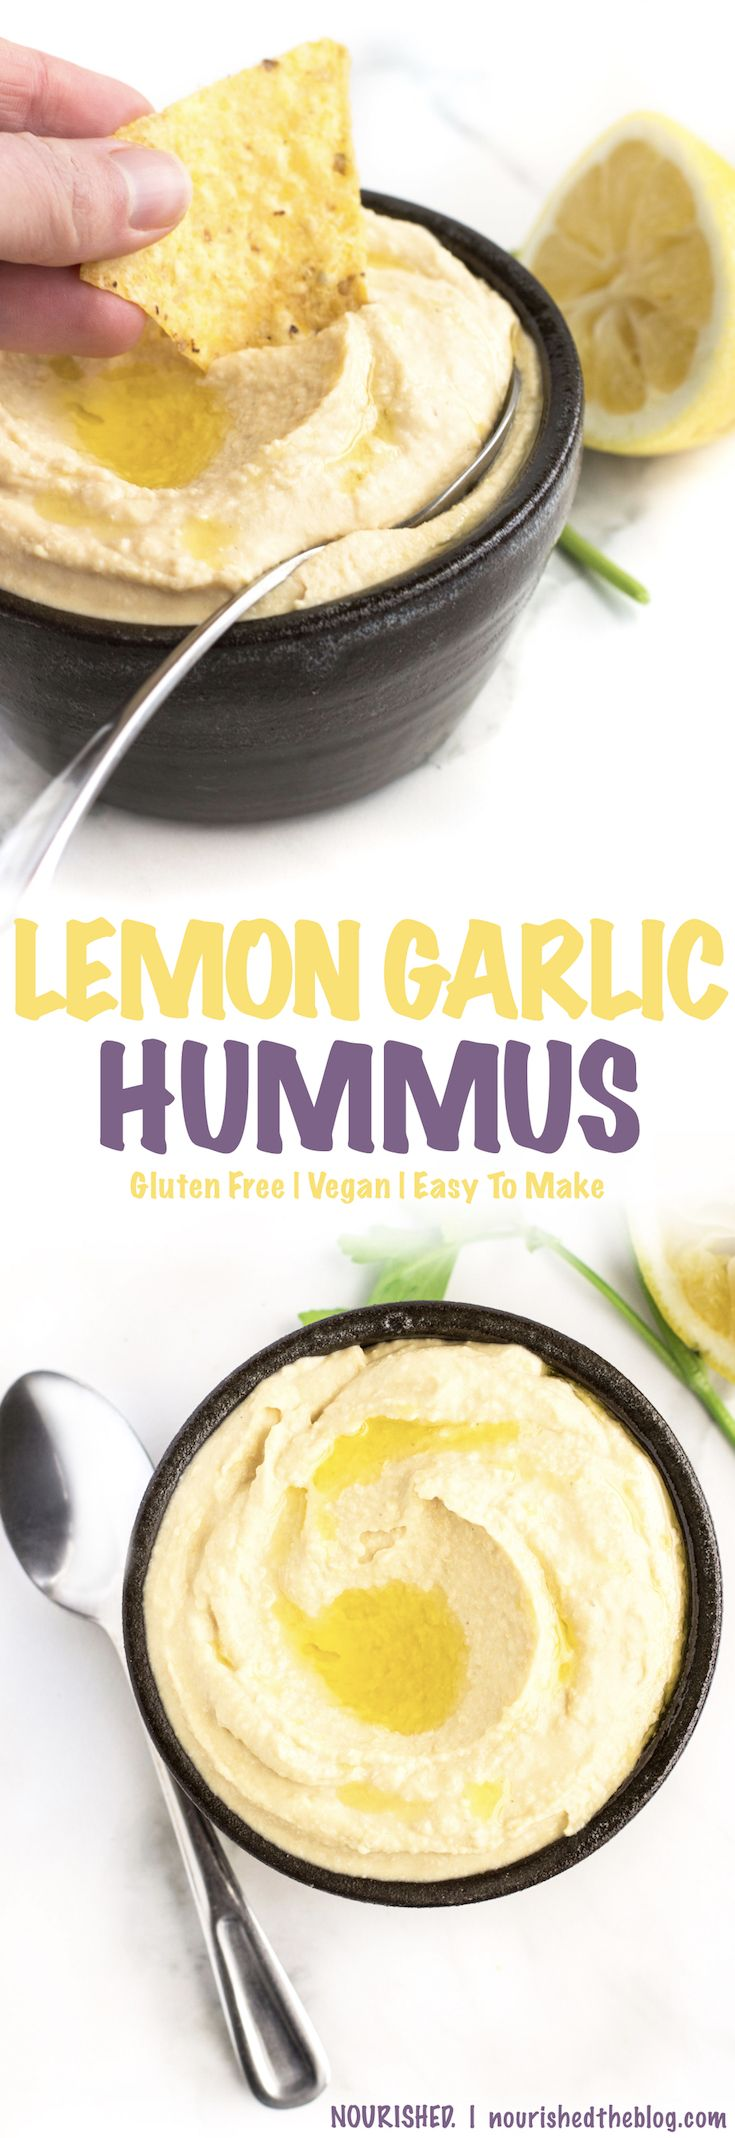 Homemade Lemon Garlic Hummus | A healthy snack recipe for a simple chickpea hummus that's easy to make and loaded with flavour! {gluten free, vegan} | nourishedtheblog.com